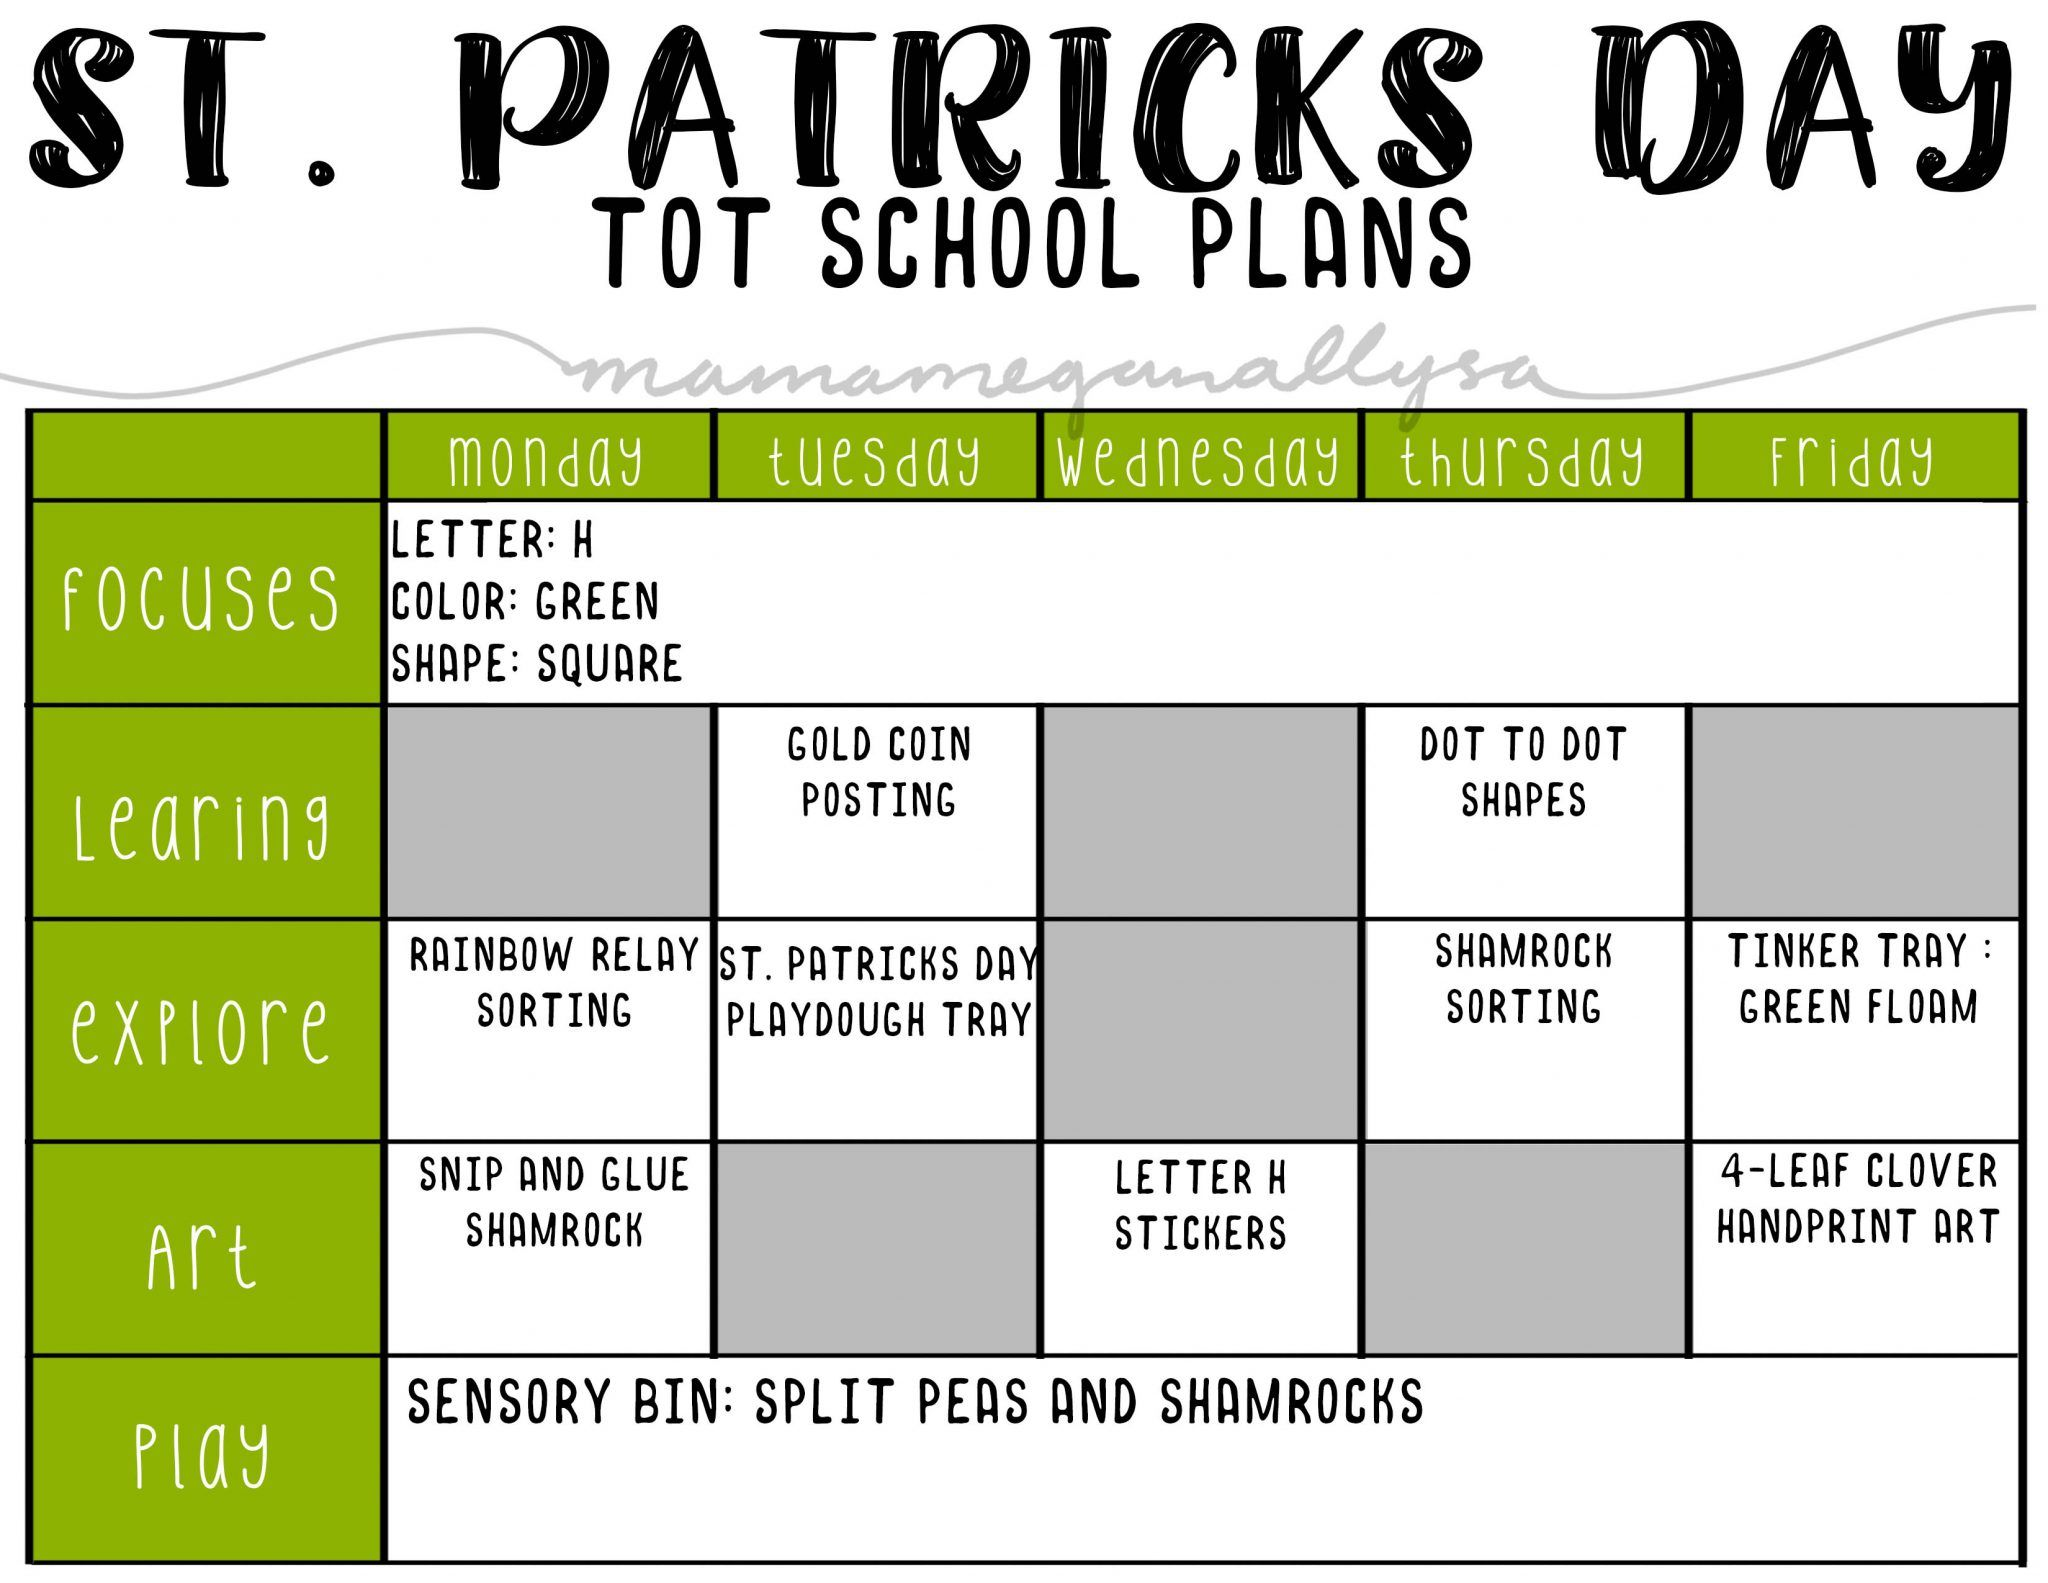 Simple March Tot School Plans For 2 5 Toddlers